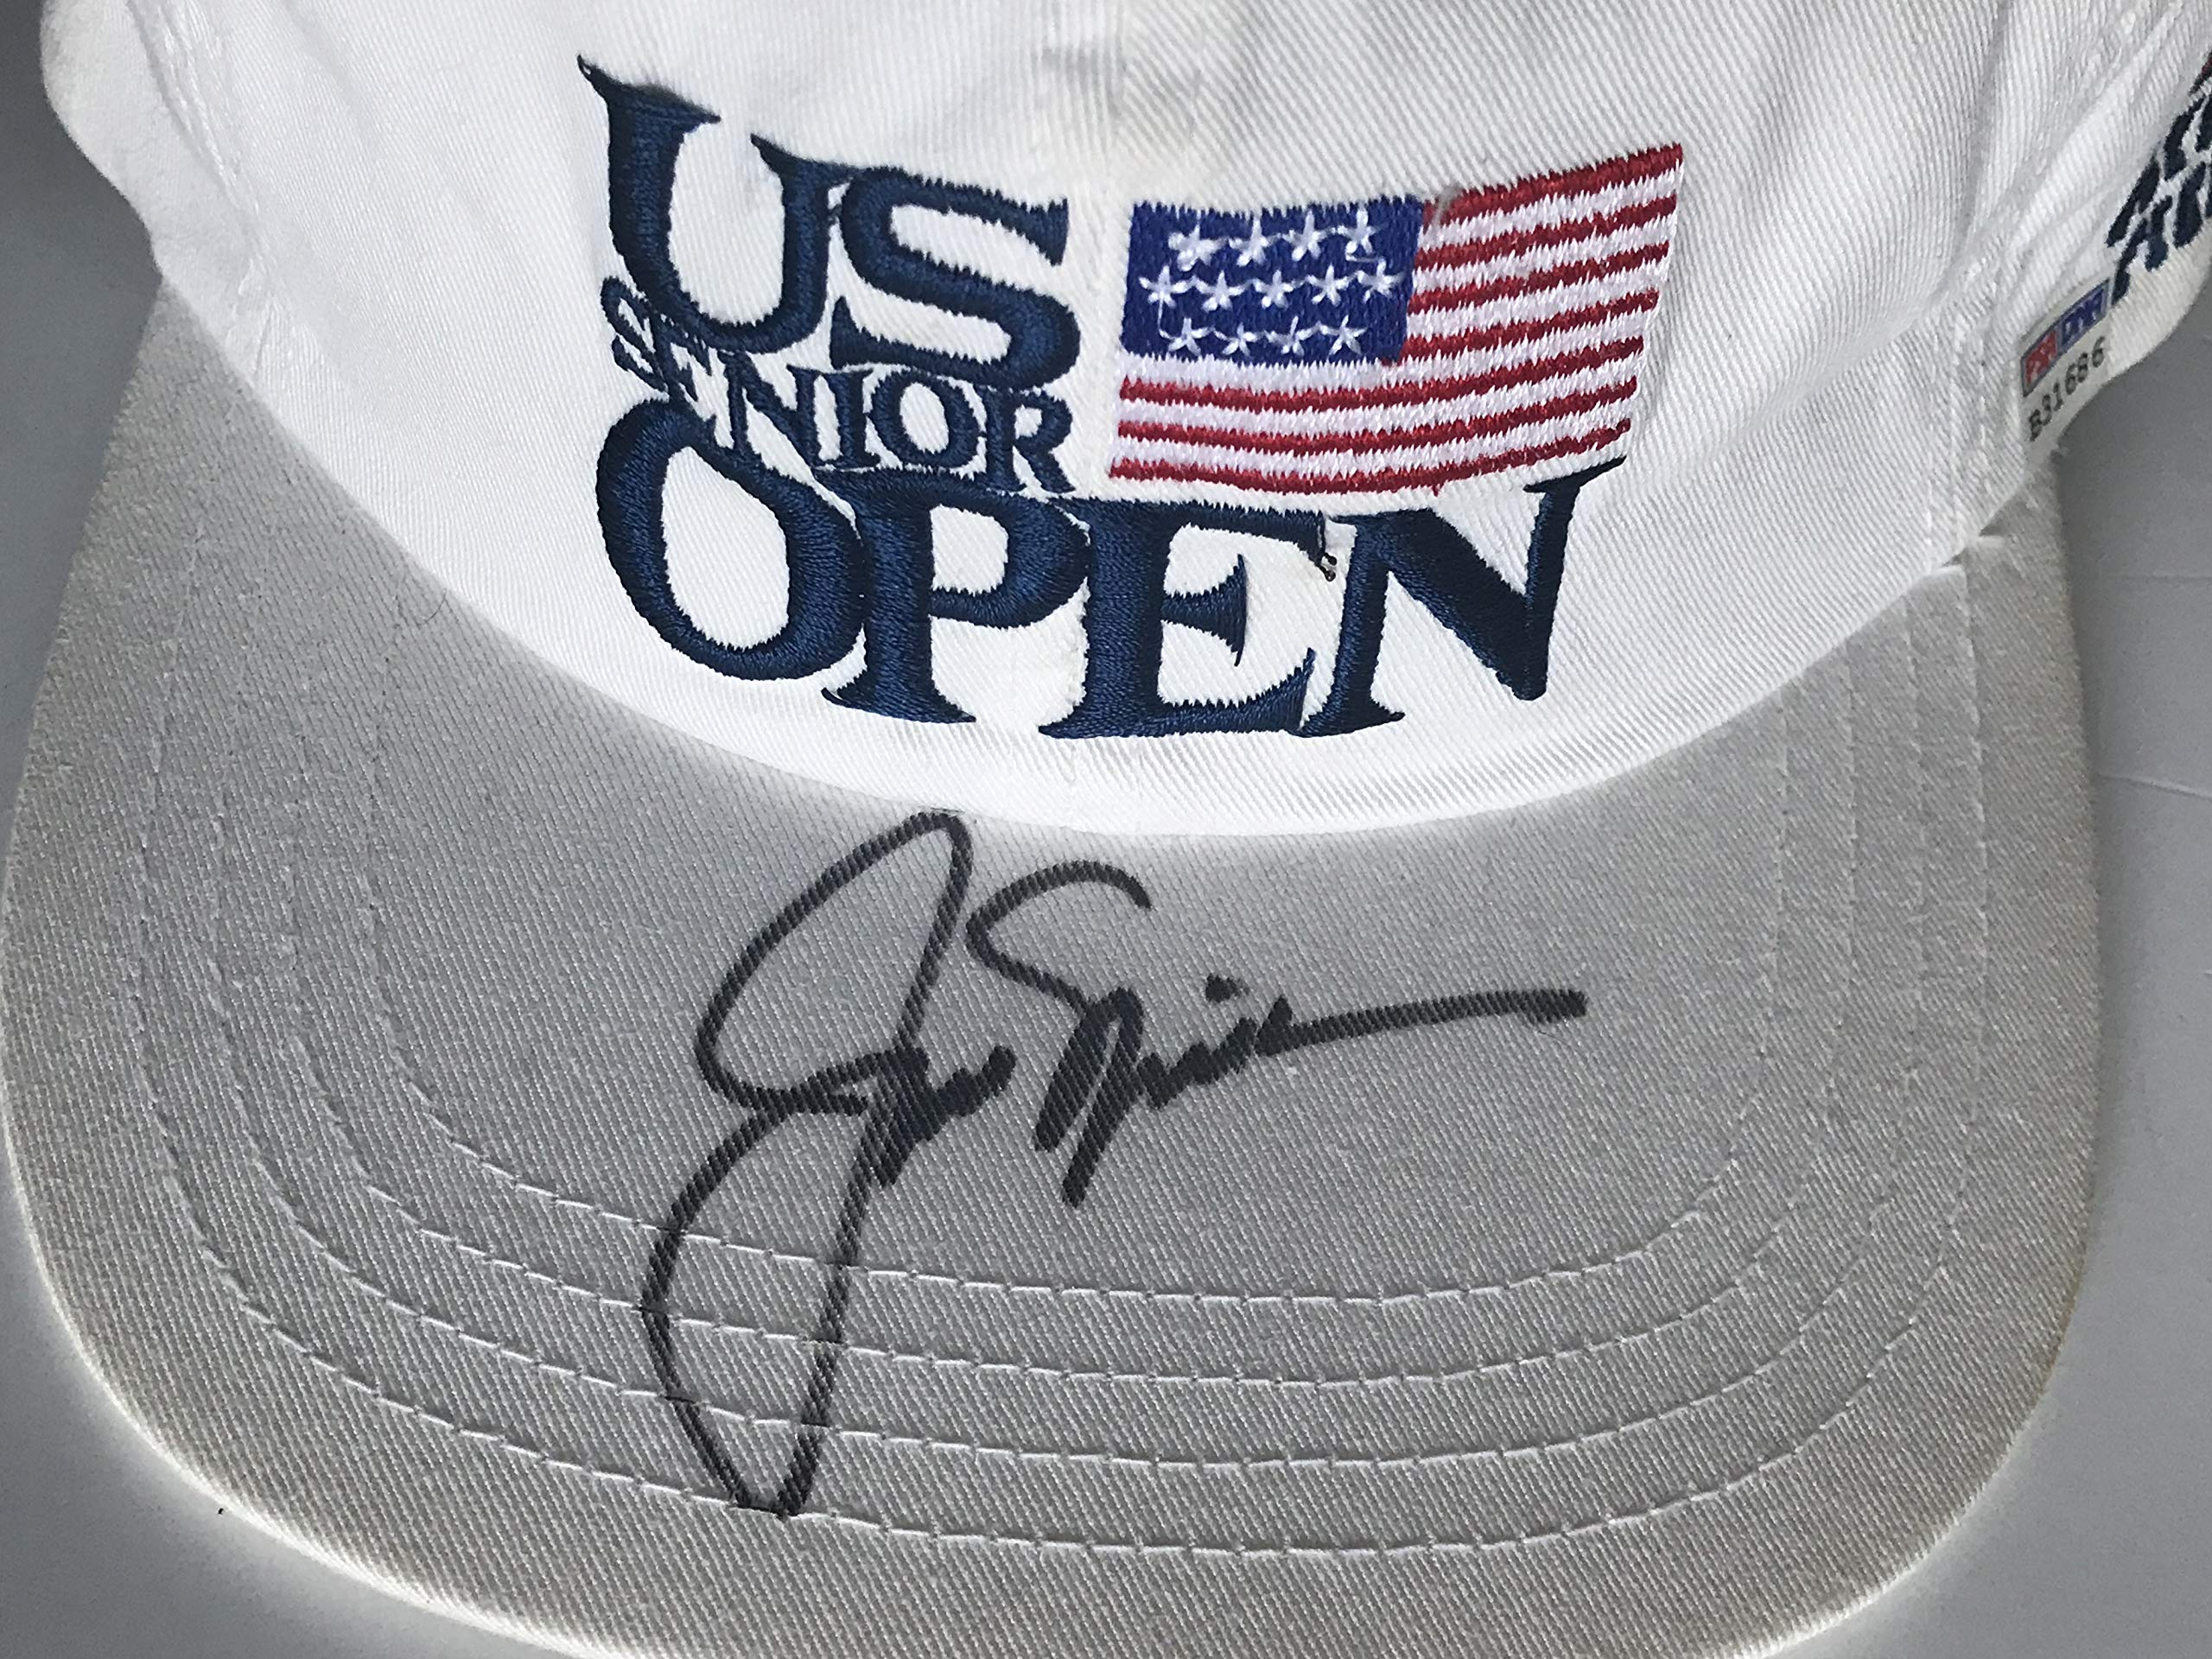 Jack Nicklaus signed golf hat u.s. senior open olympia fields psa dna